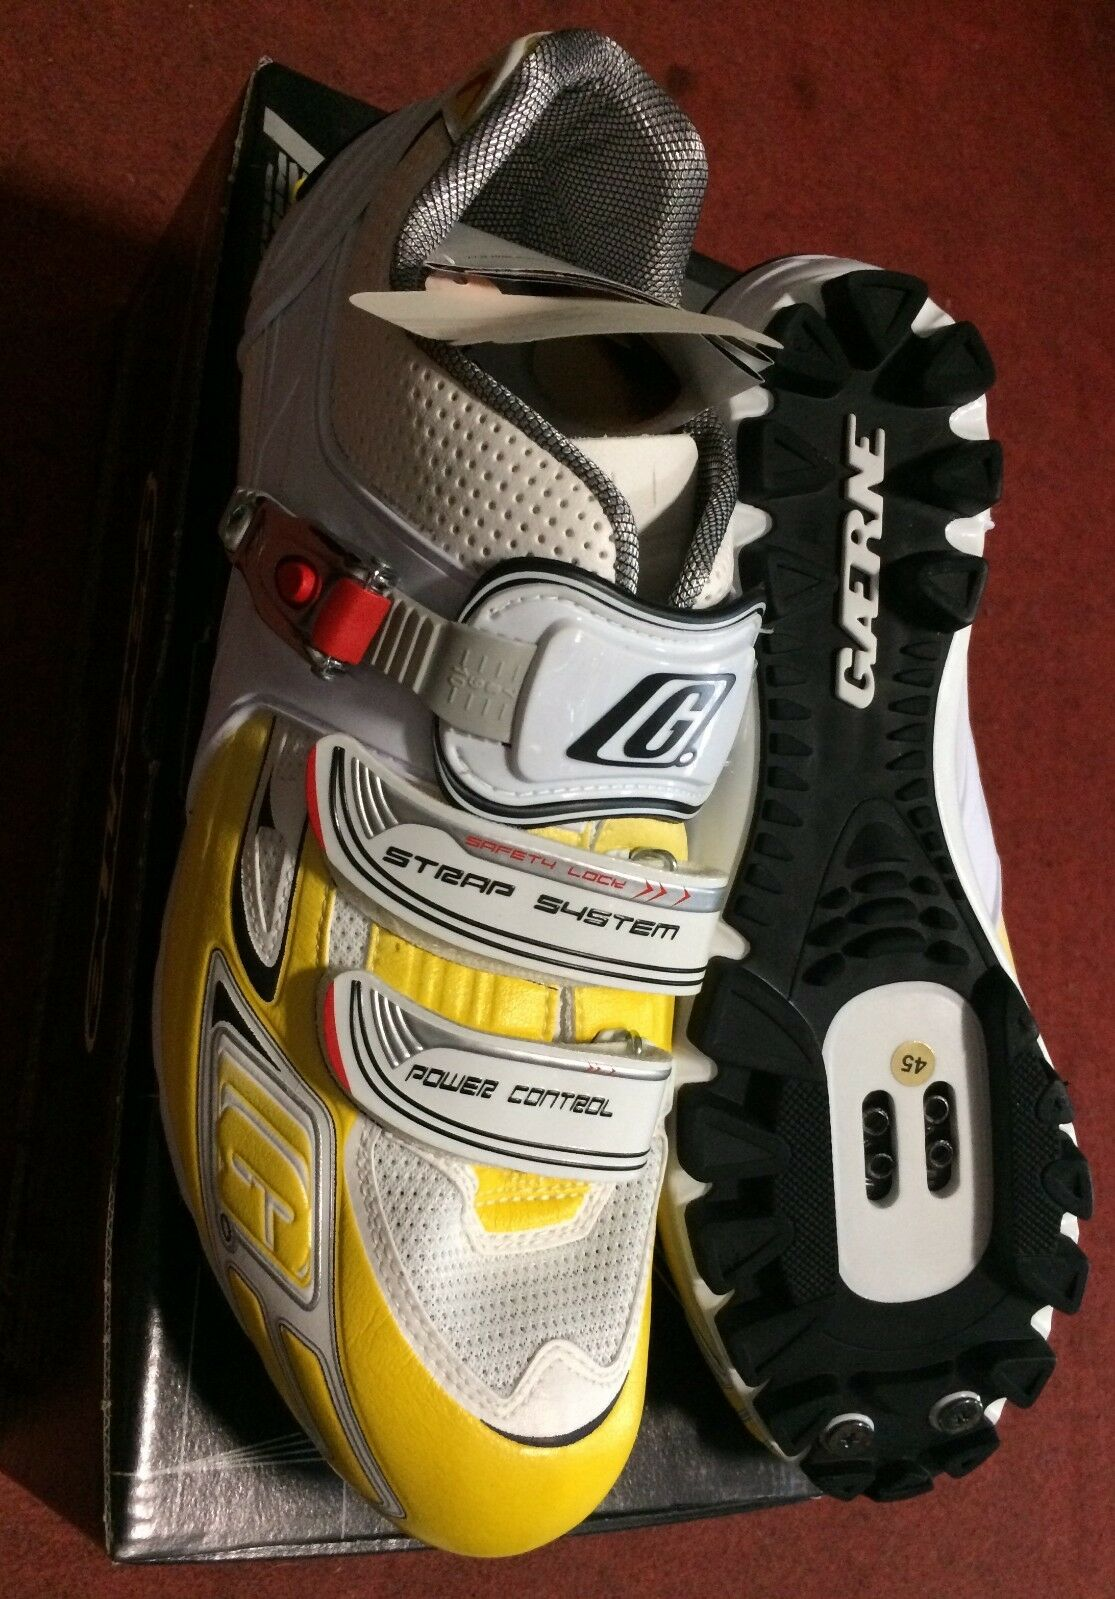 shoes Mountain Bike Gaerne G.BS MTB shoes 45 yellow made in  fahrradschuhe